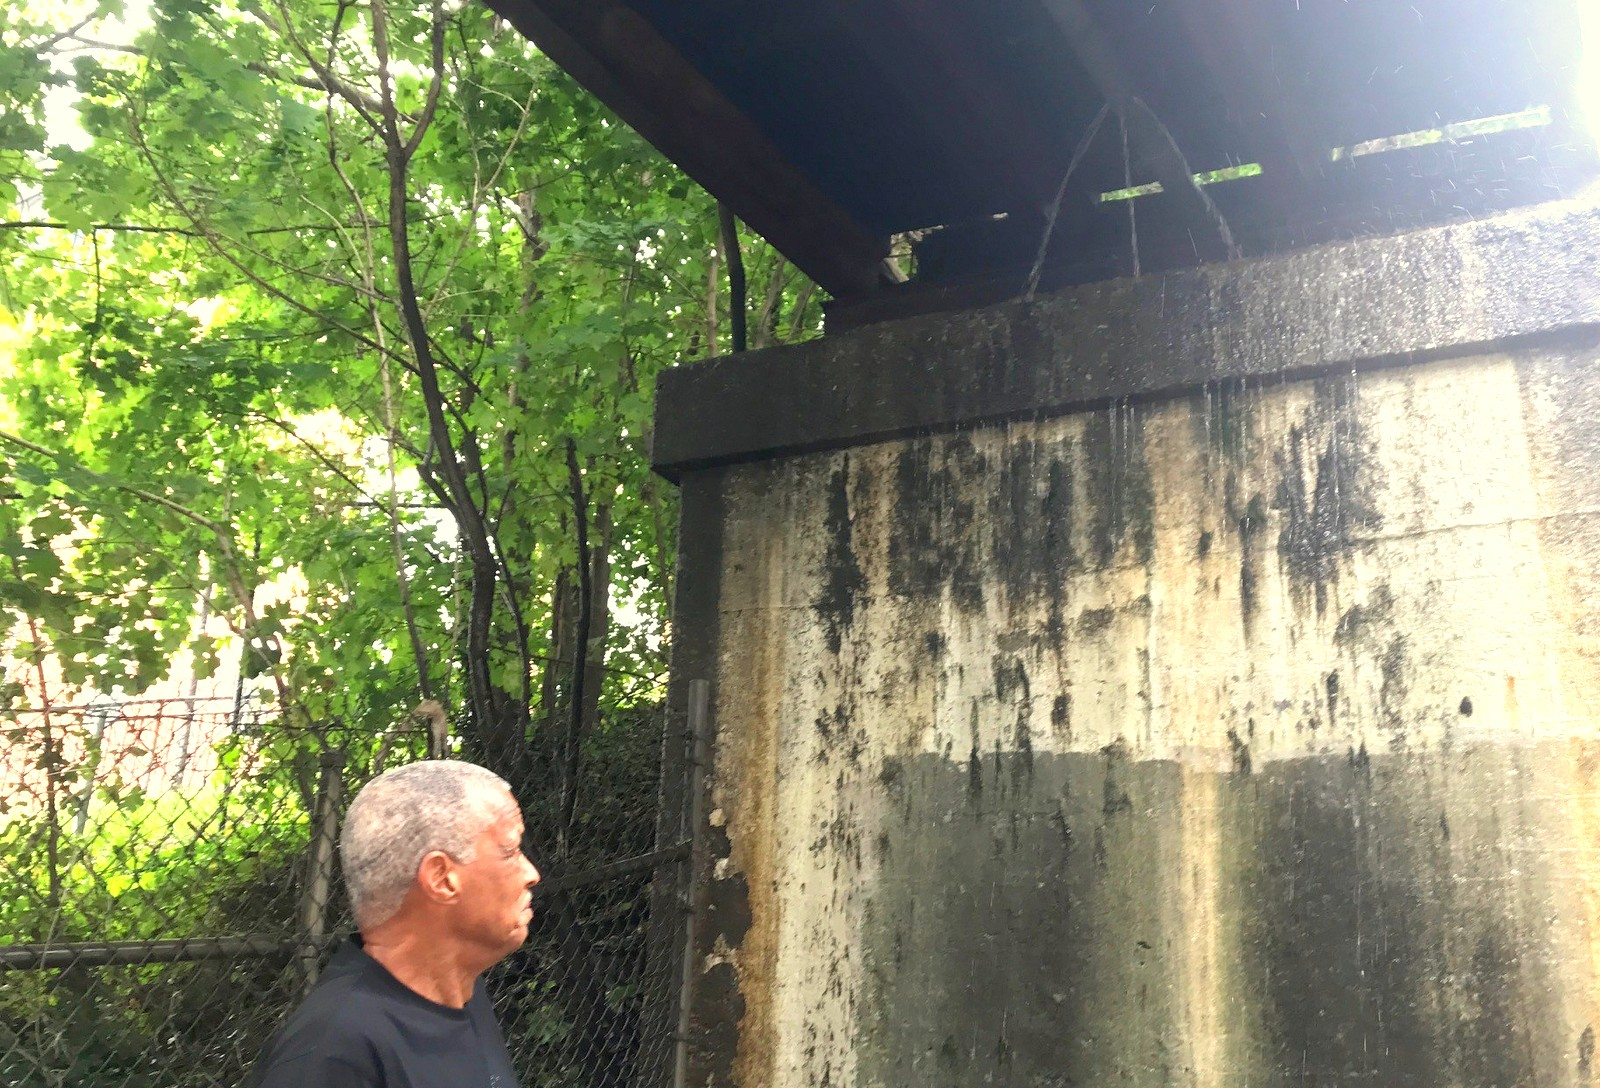 Charles Levi looks up at the water that running continuously off of the CSX bridge, which he is sure is connected to the dirty water that comes into Mount Hebron Baptist Church located about 100 feet from the bridge. (Both Mark Reutter)